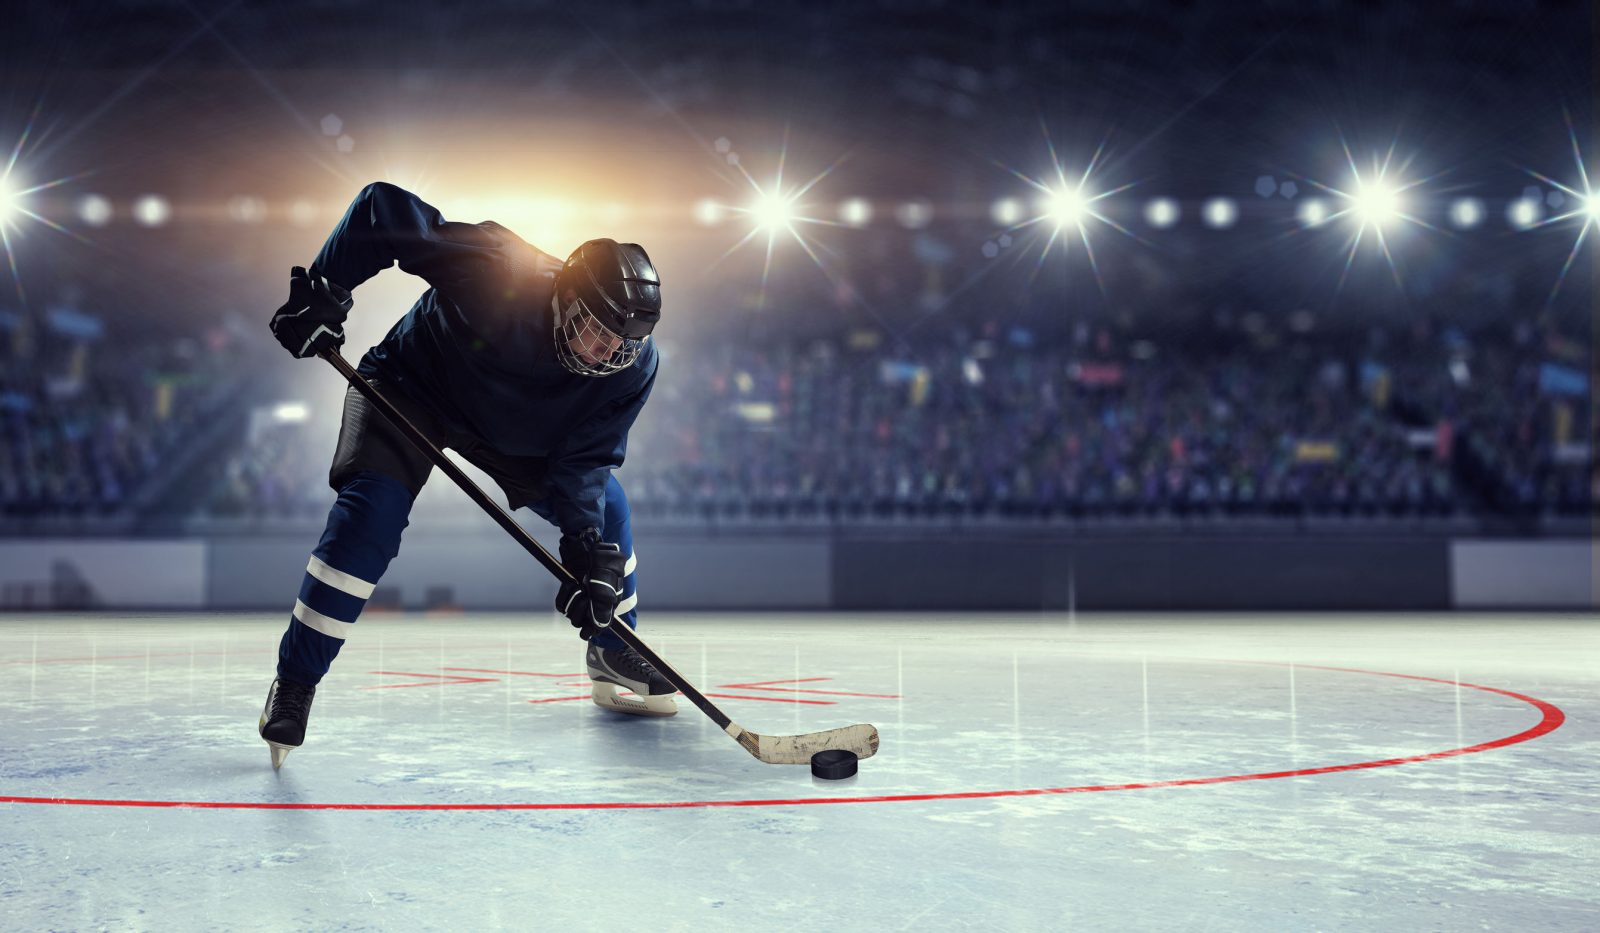 NHL legend Mike Modano invests in Tiidal Gaming